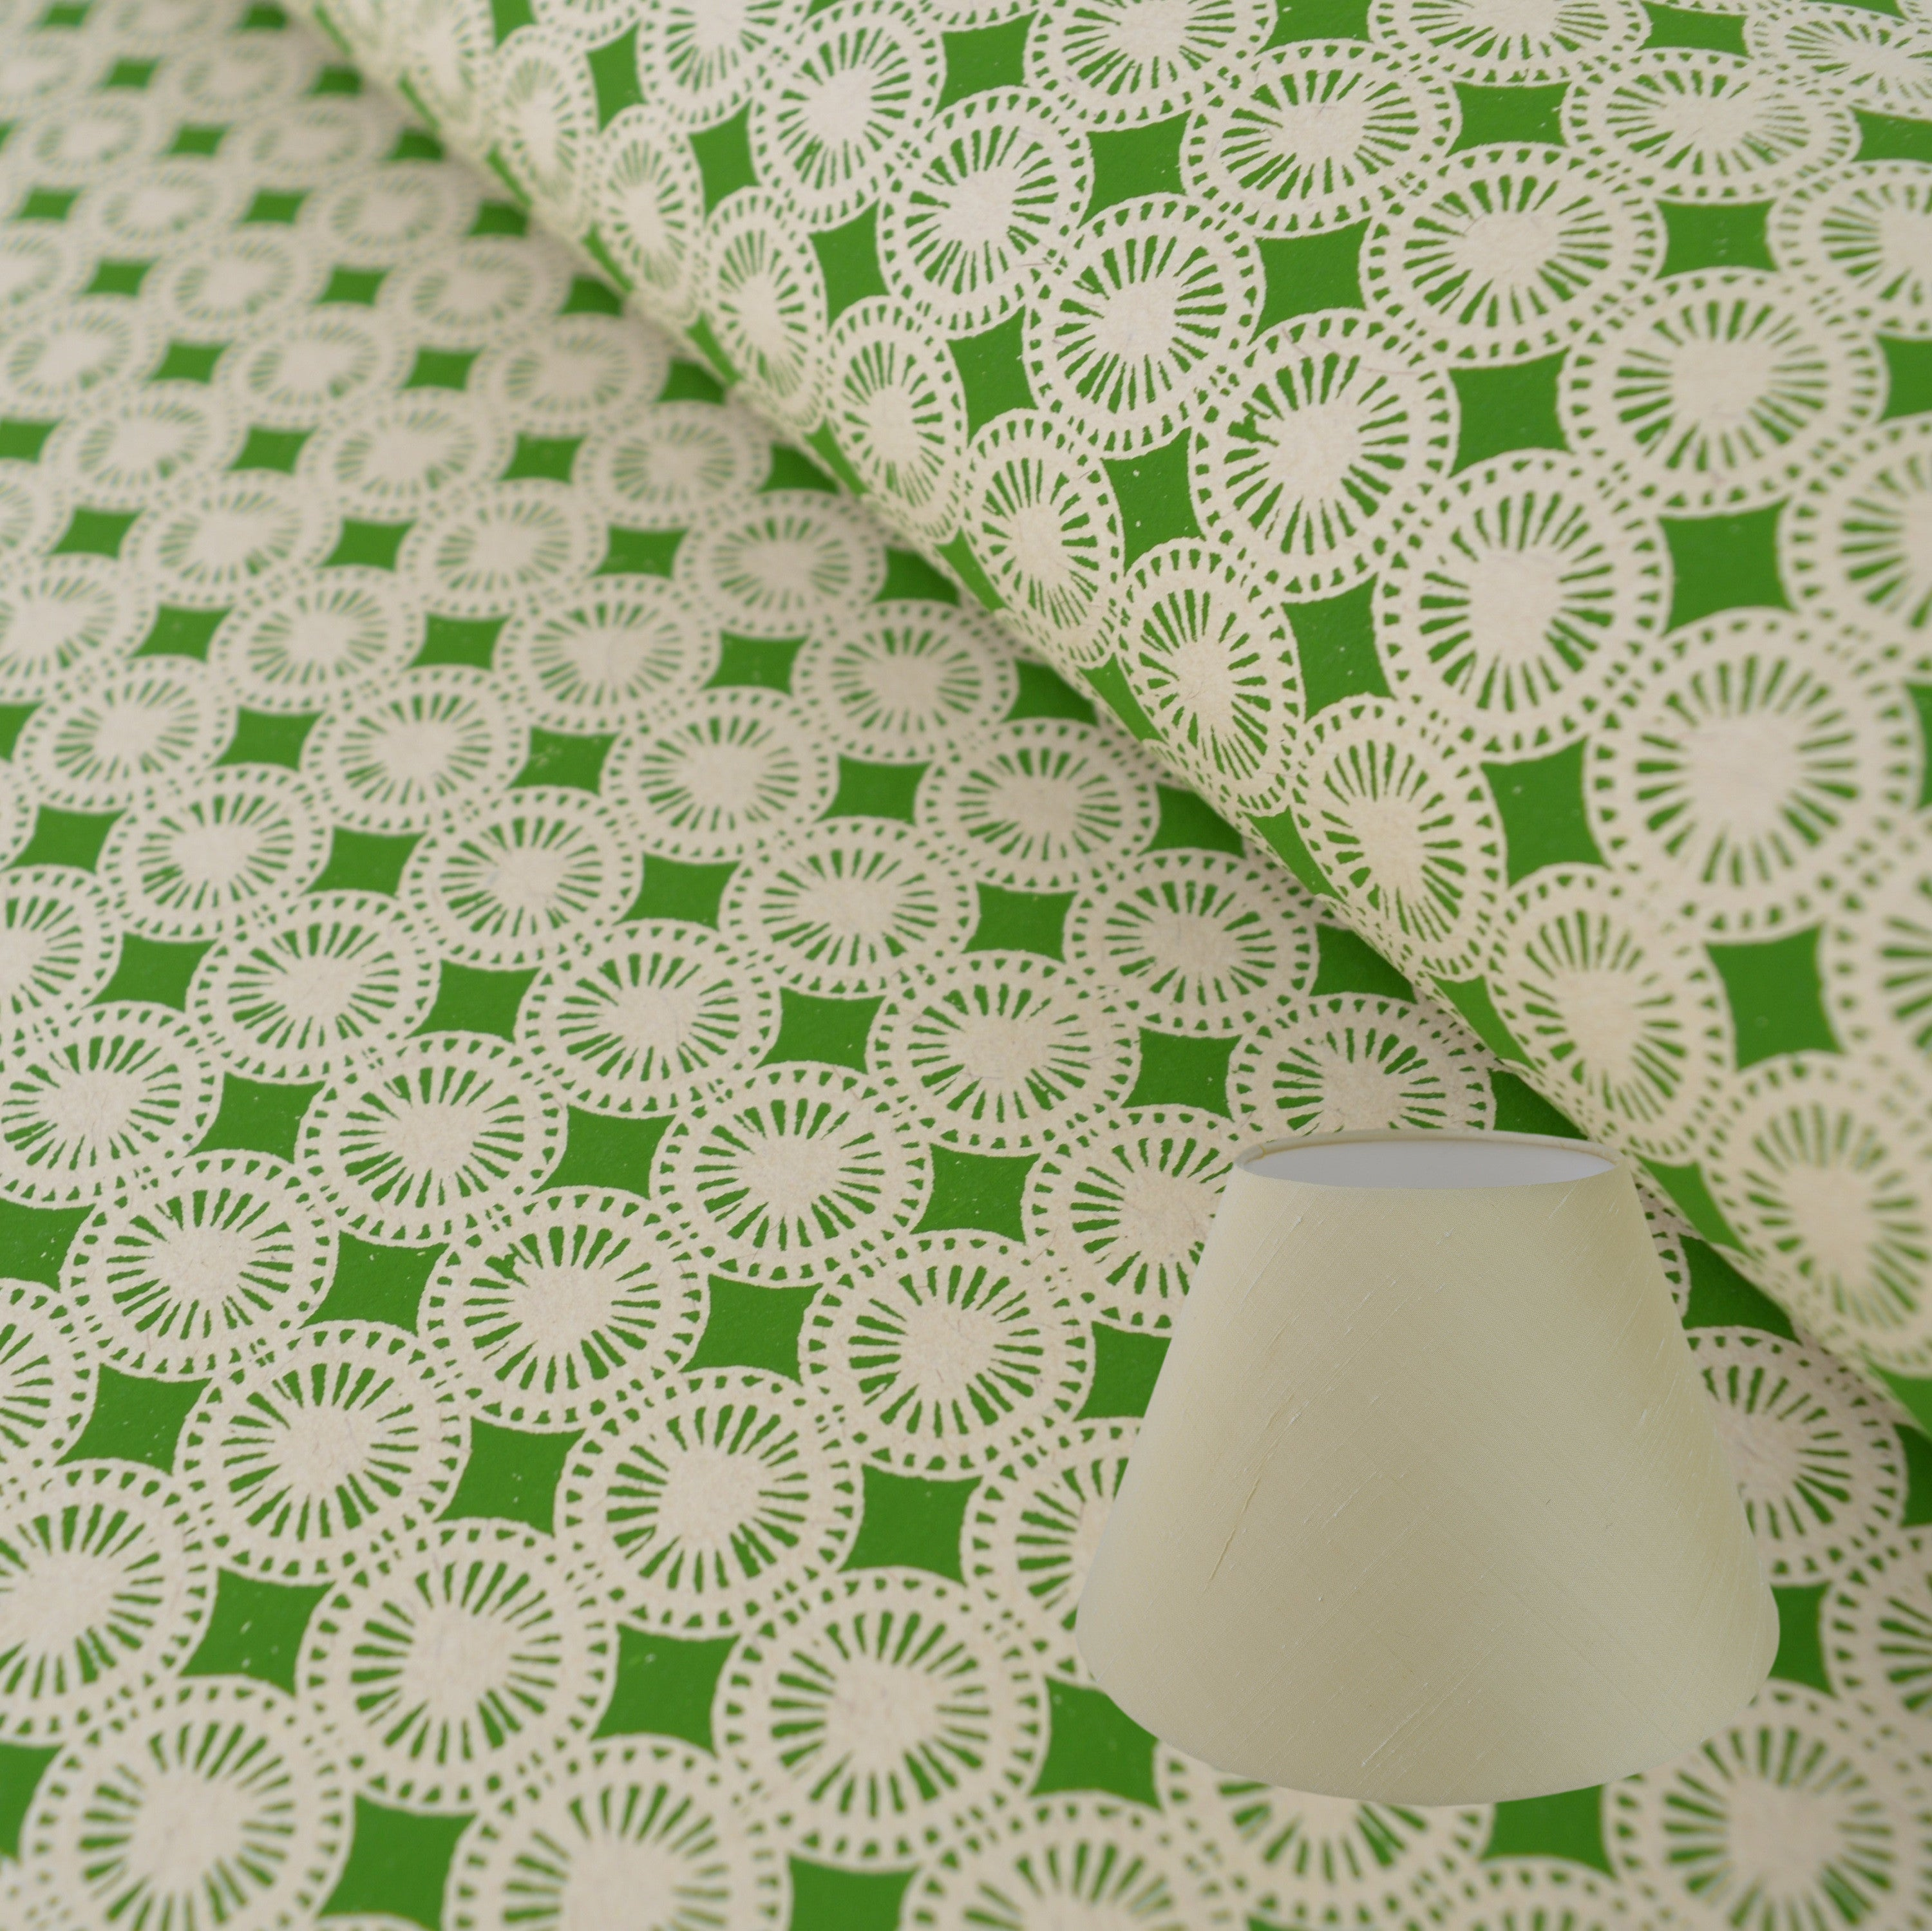 Munro and Kerr green hand printed dandelion paper for a tapered empire lampshade